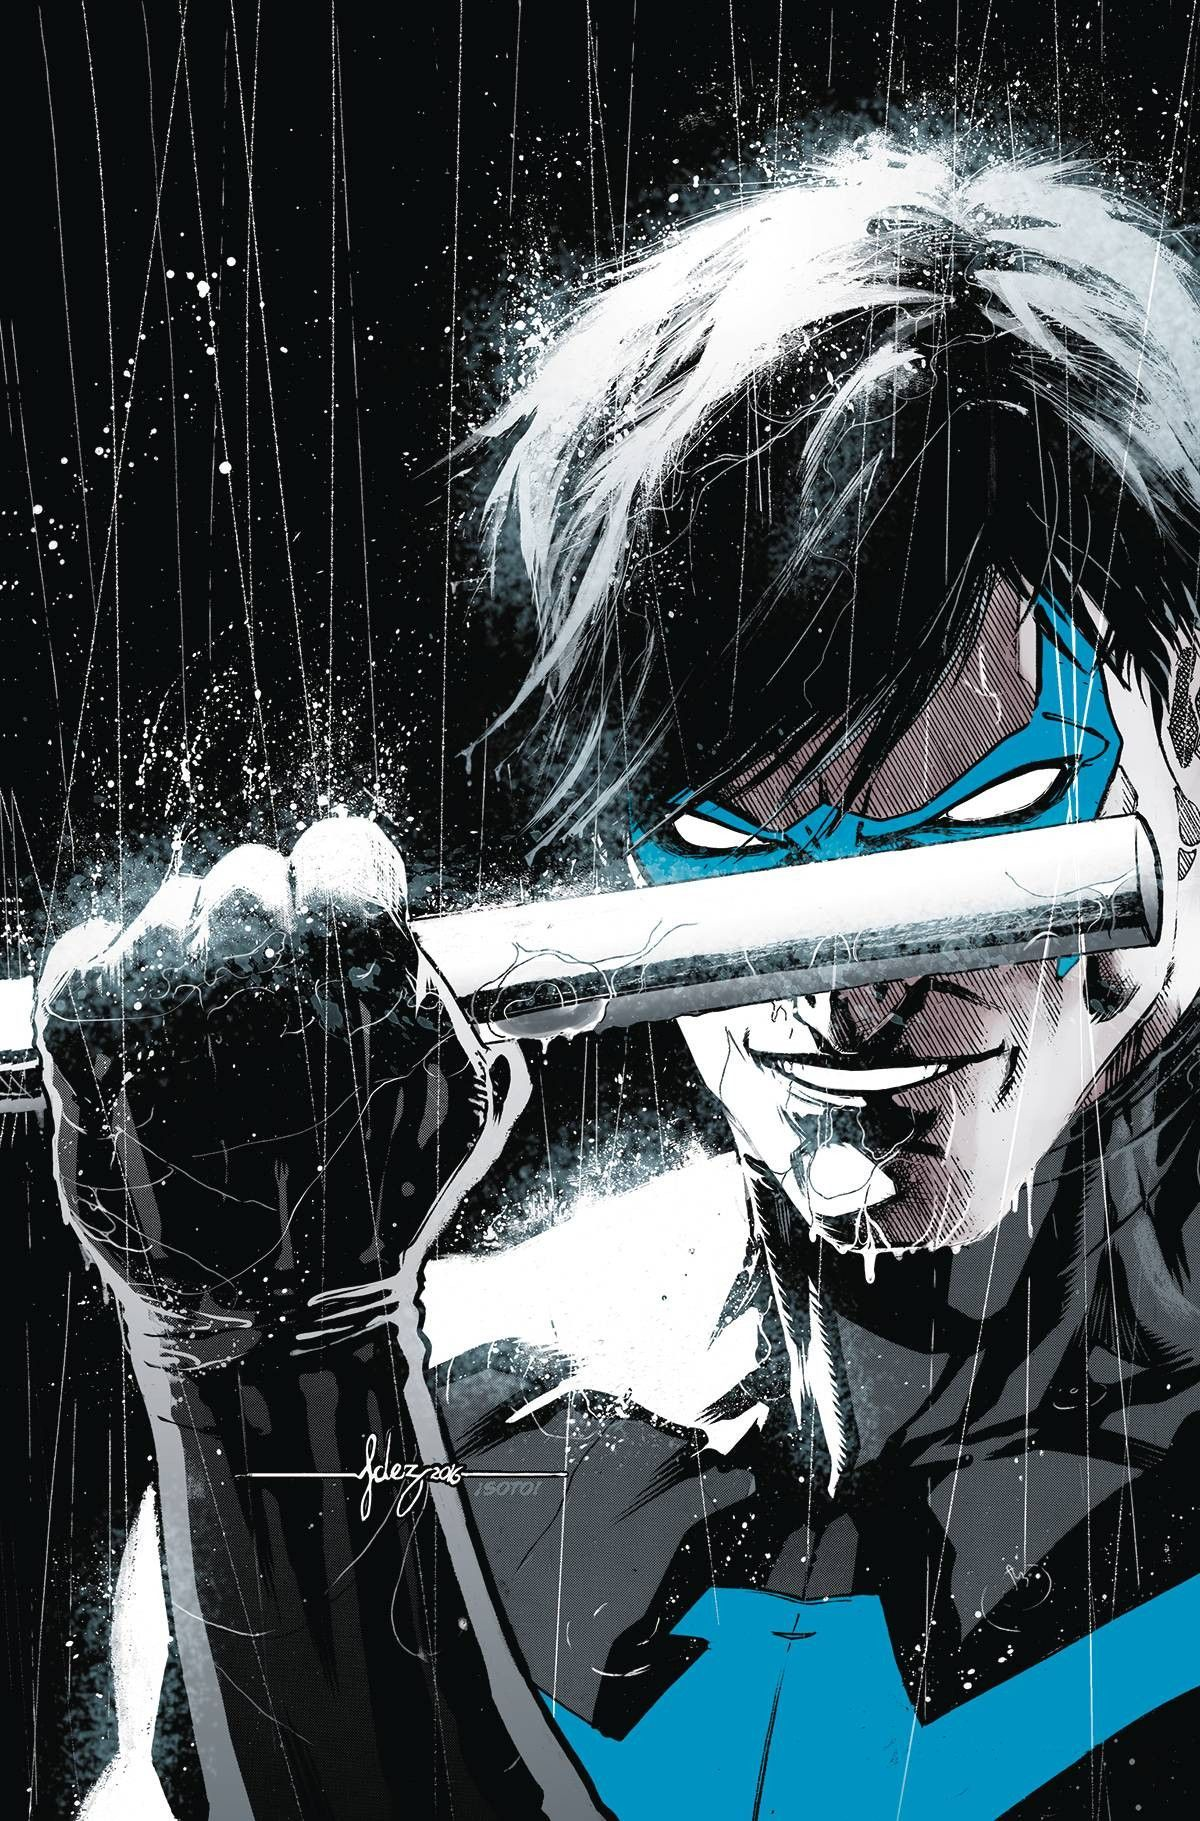 DC COMICS (W) Tim Seeley (A) Yanick Paquette (CA) Javi Fernandez He's been Robin, Batman, a spy, a ghost. Now, Dick Grayson returns to Gotham City to reclaim the life that was taken from him. But when